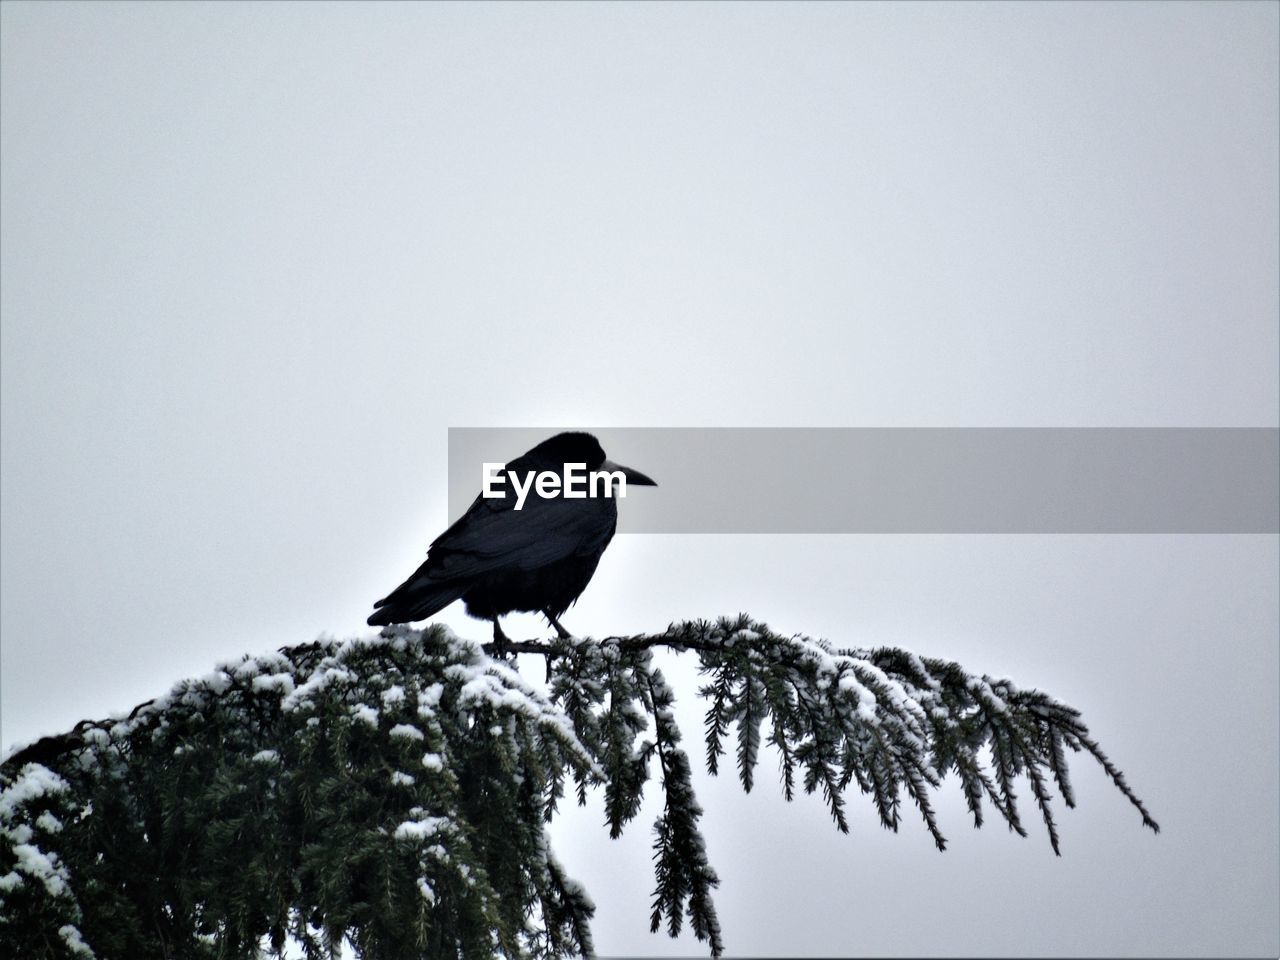 animals in the wild, bird, animal wildlife, animal, animal themes, vertebrate, one animal, tree, sky, perching, plant, clear sky, no people, copy space, low angle view, nature, day, black color, outdoors, beauty in nature